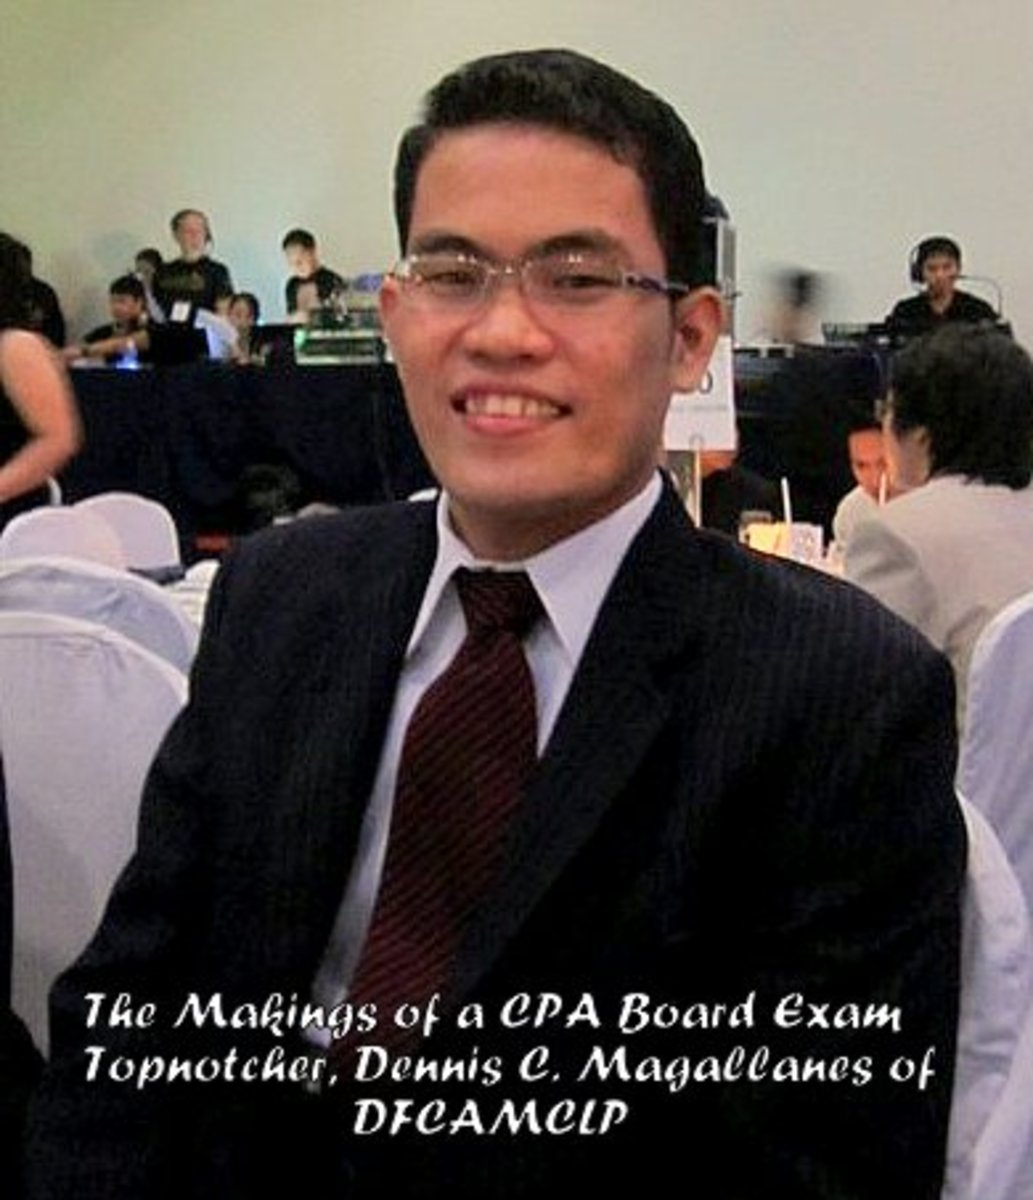 The Makings of a CPA Board Examination Topnotcher,             Dennis Magallanes of DFCAMCLP